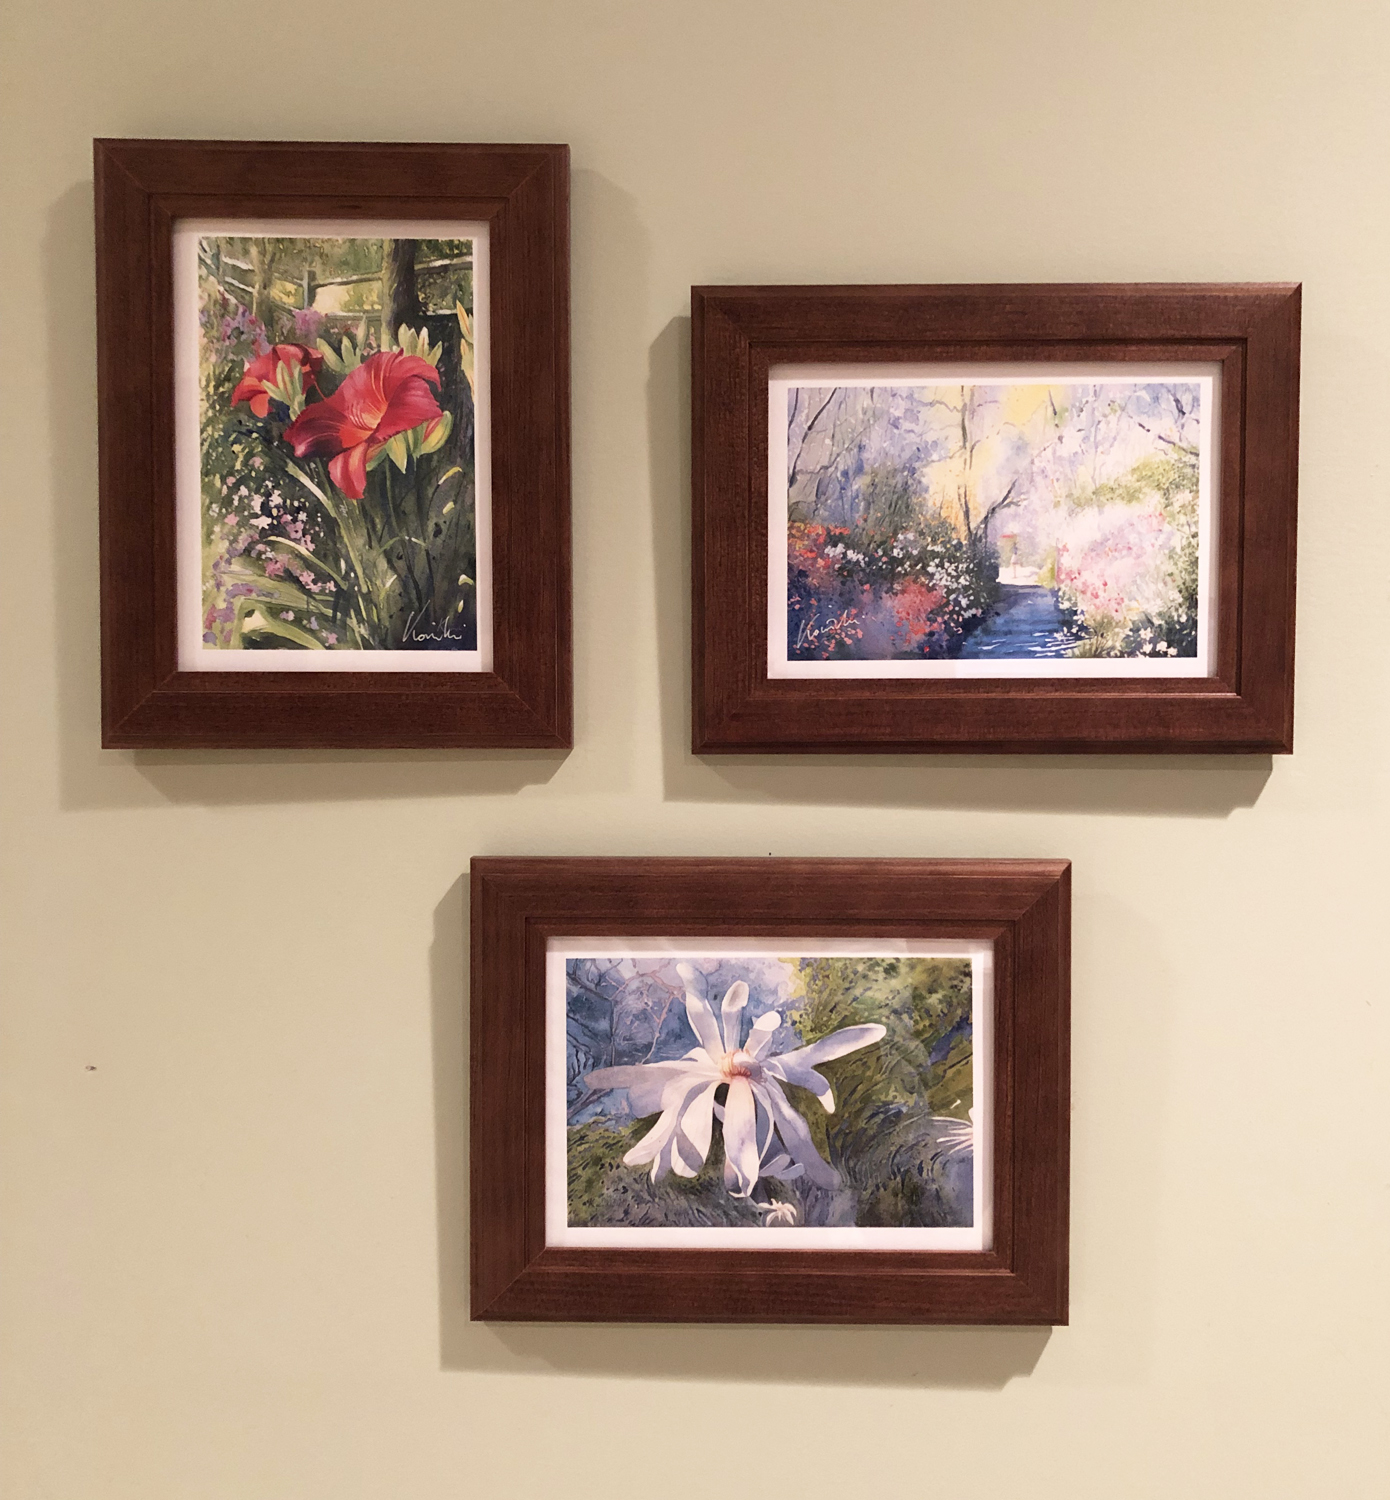 frame-able - a better way to send signed, miniature prints and lets your friends treasure your words, as well!